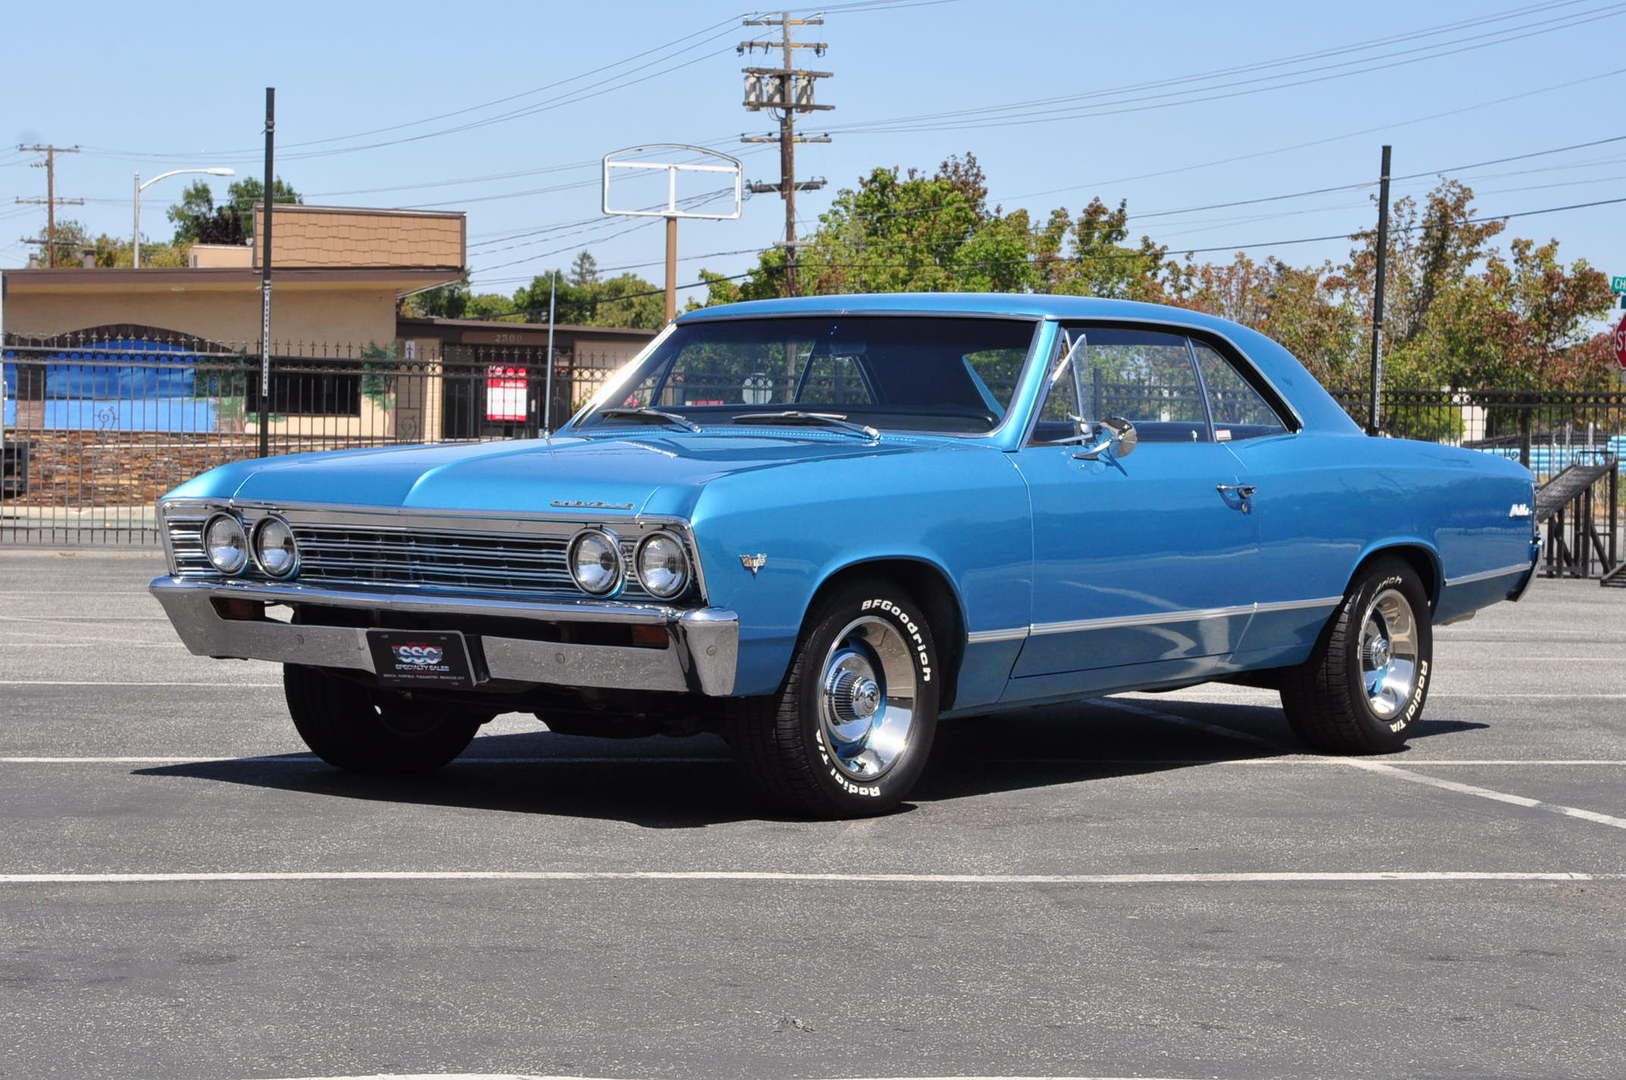 1967 Chevrolet Chevelle Station Wagon For Sale On Craigslist Autos Post